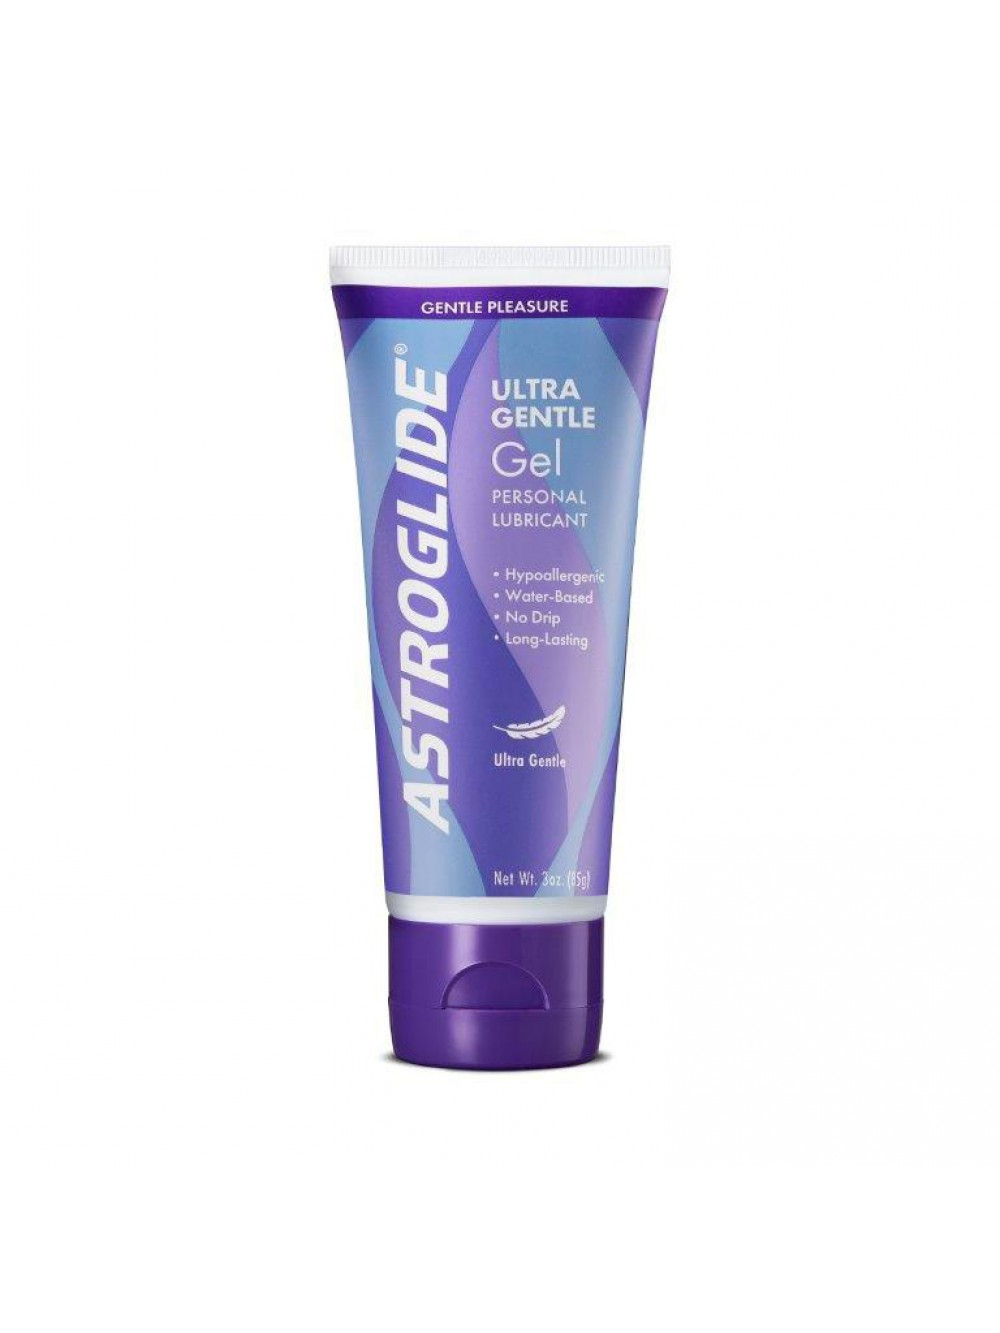 Ultra Gentle Gel 3oz